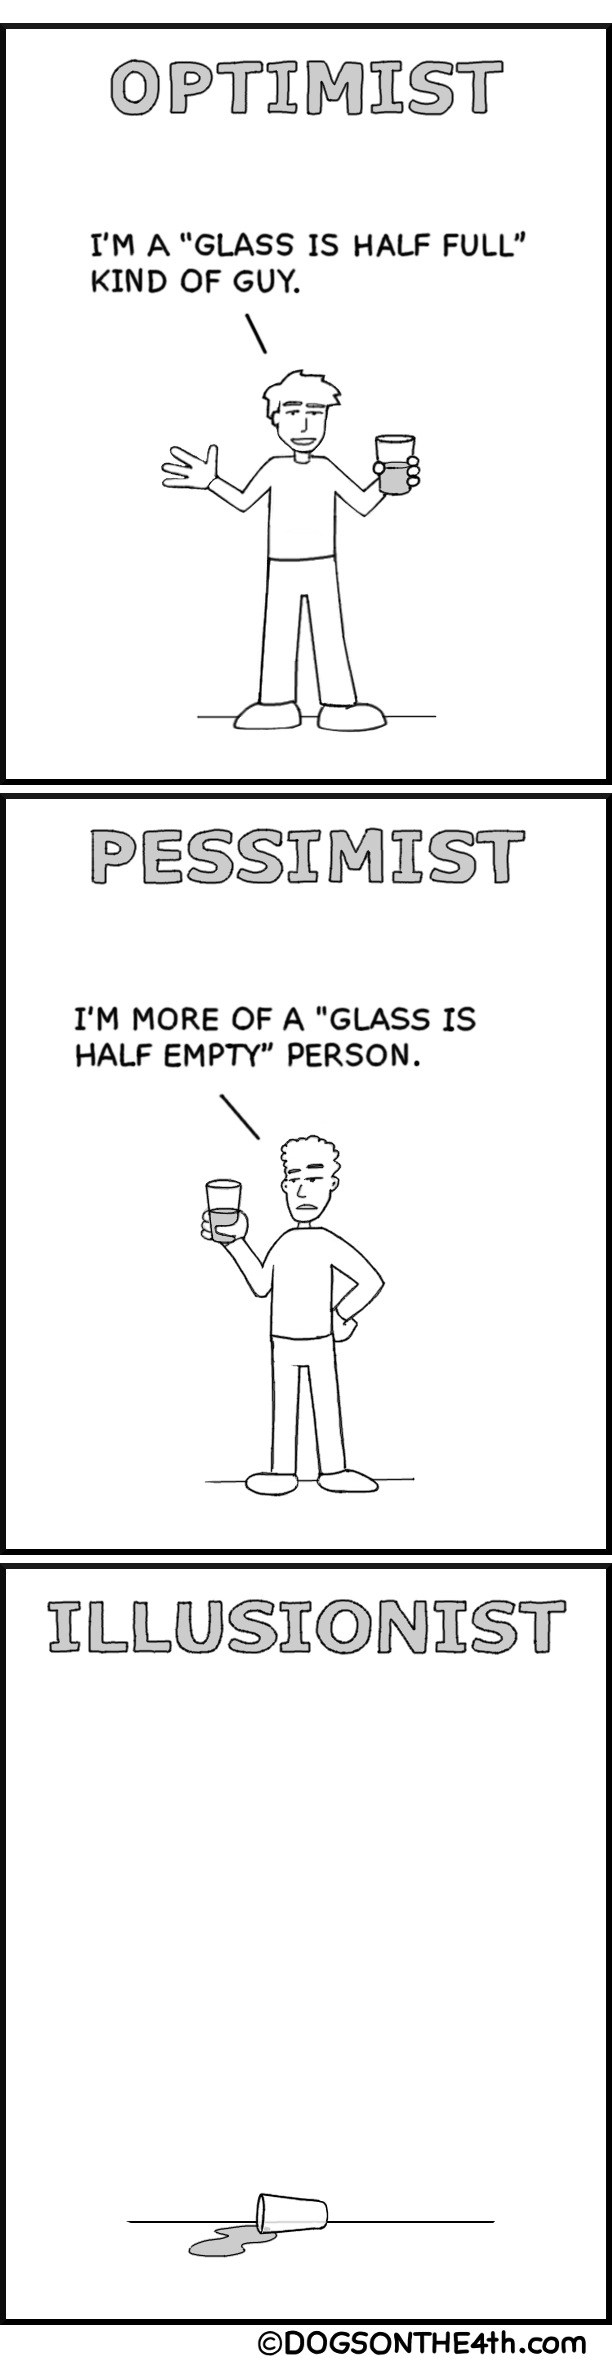 web comics optimism pessimism Three Kinds of People